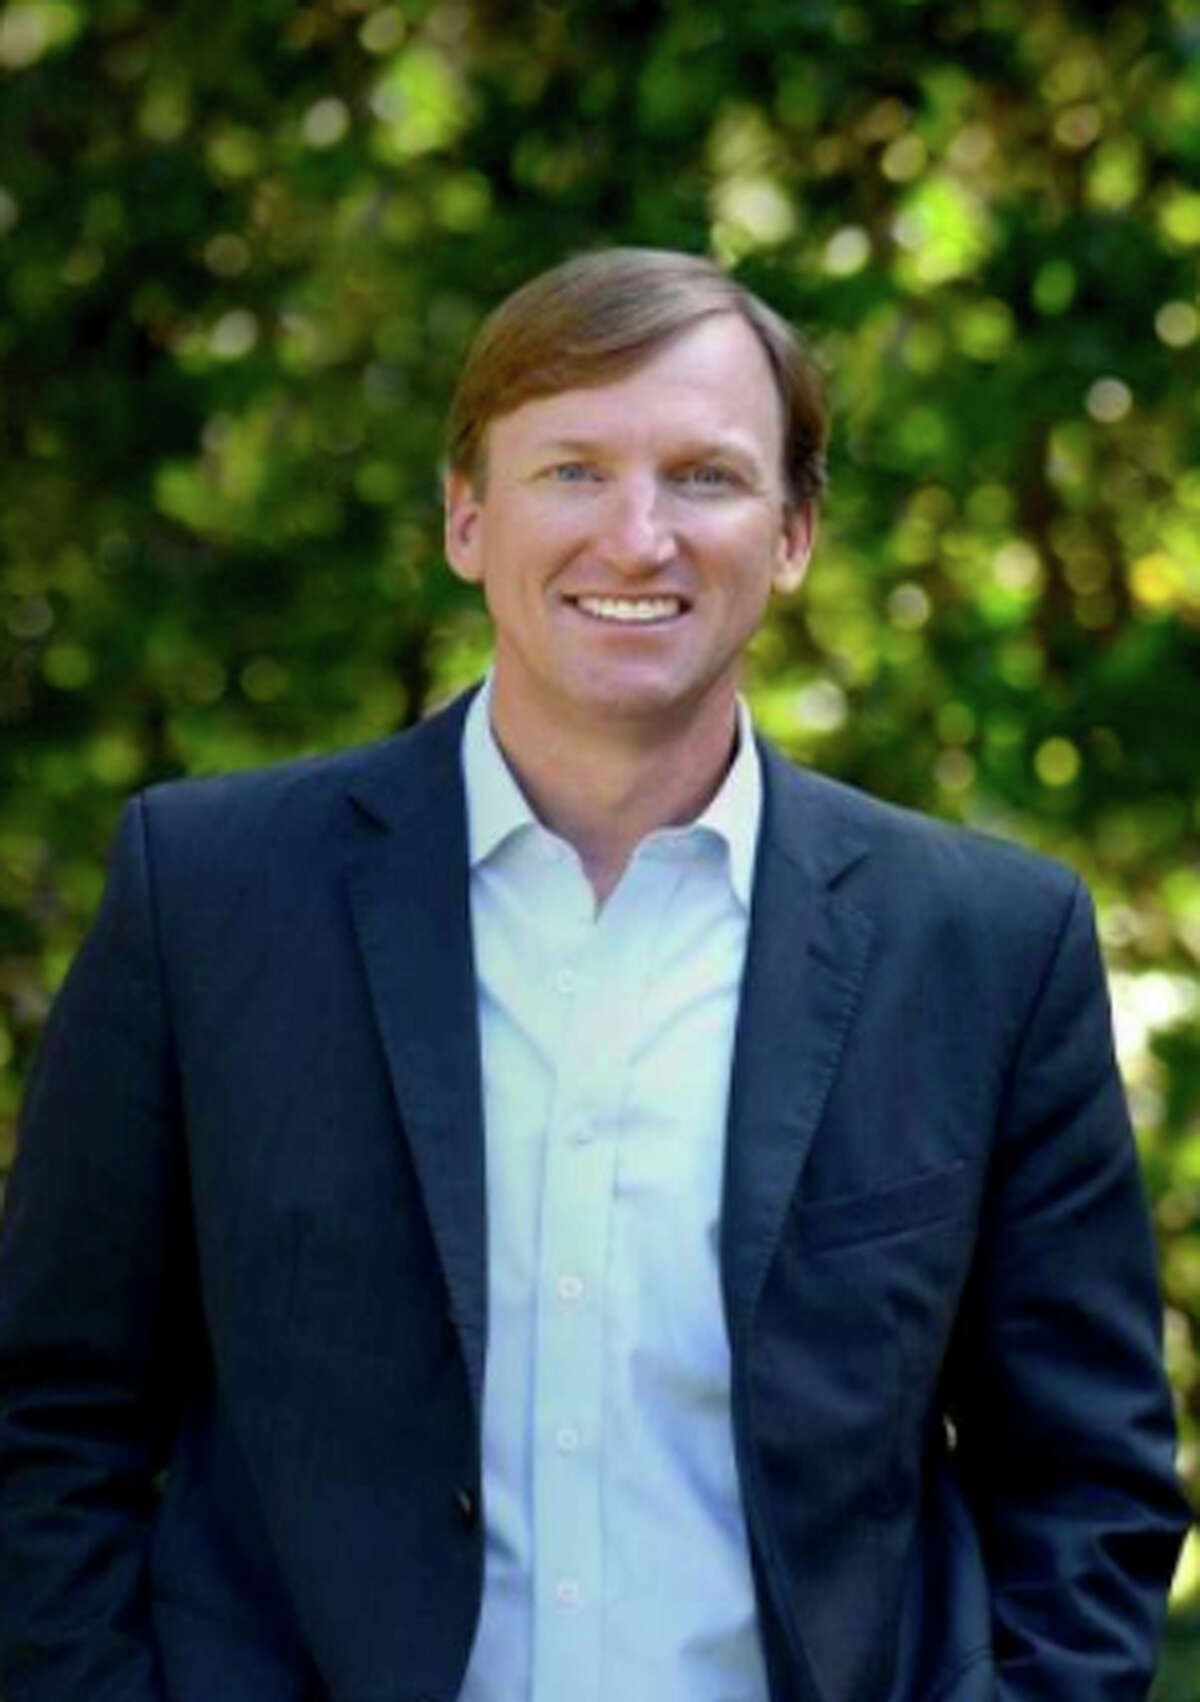 Andrew White, a Houston entrepreneur and son of the late Gov. Mark White, is setting the stage to run for governor against incumbent Republican Greg Abbott, supporters say.